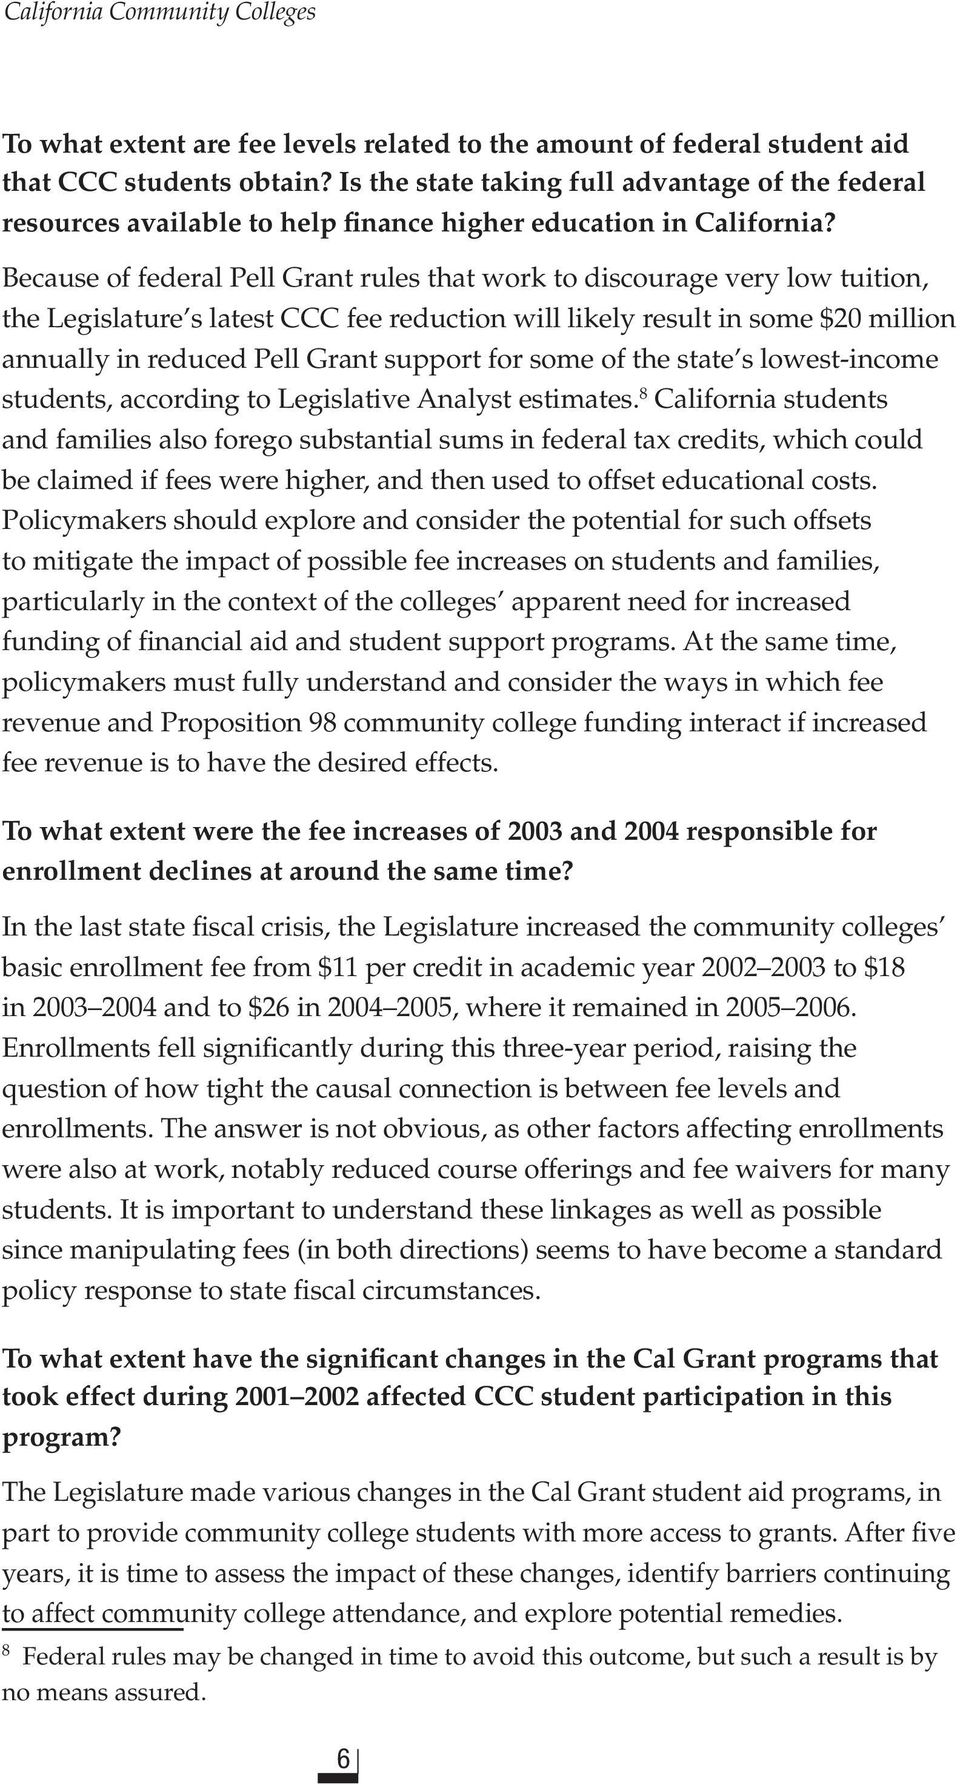 Because of federal Pell Grant rules that work to discourage very low tuition, the Legislature s latest CCC fee reduction will likely result in some $20 million annually in reduced Pell Grant support